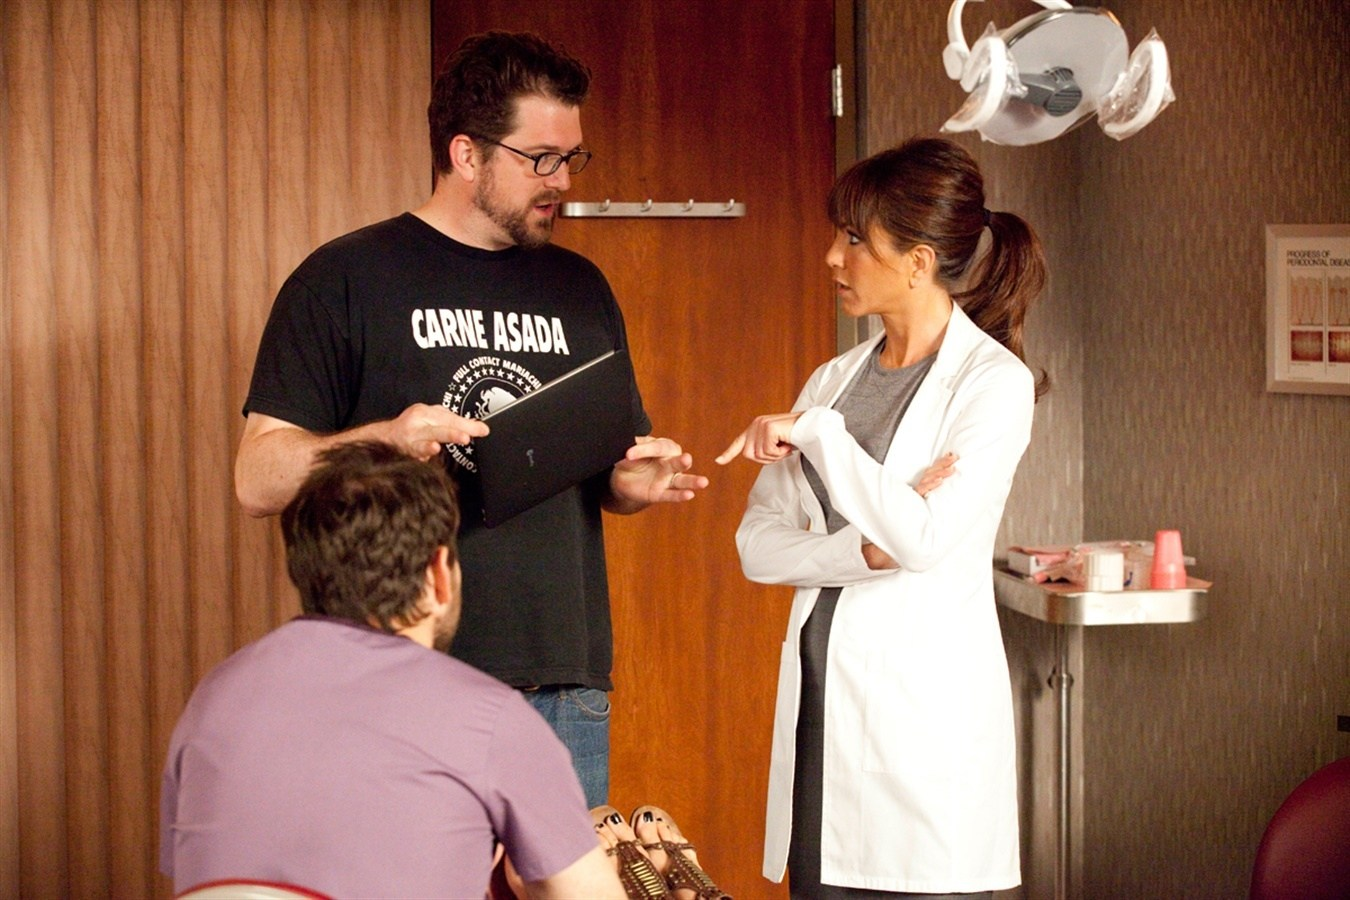 On Location : Horrible Bosses (2011) Behind the Scenes